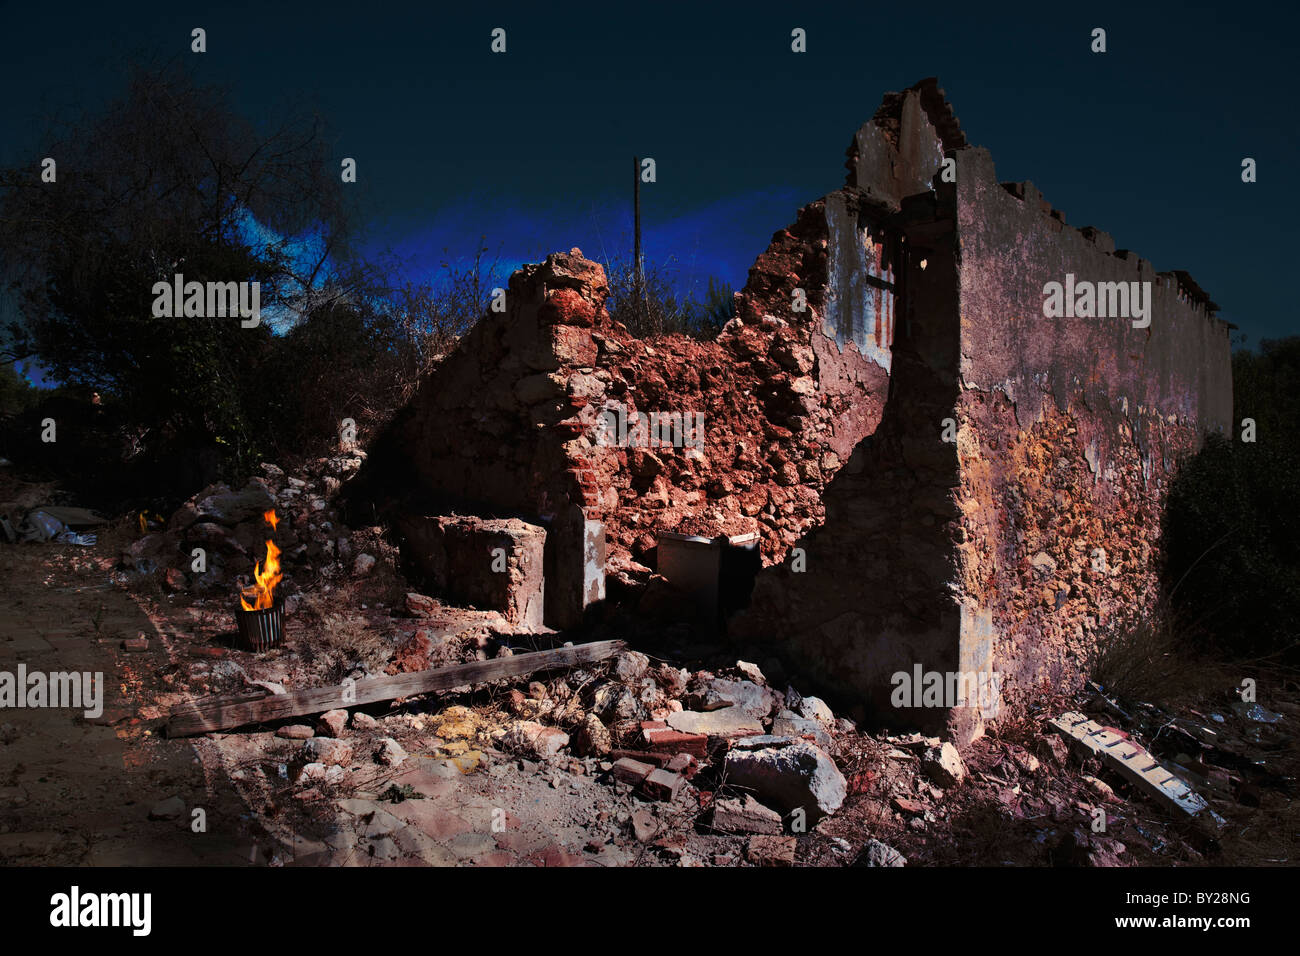 Creepy derelict decaying building at night with a fire burning in a metal basket. - Stock Image